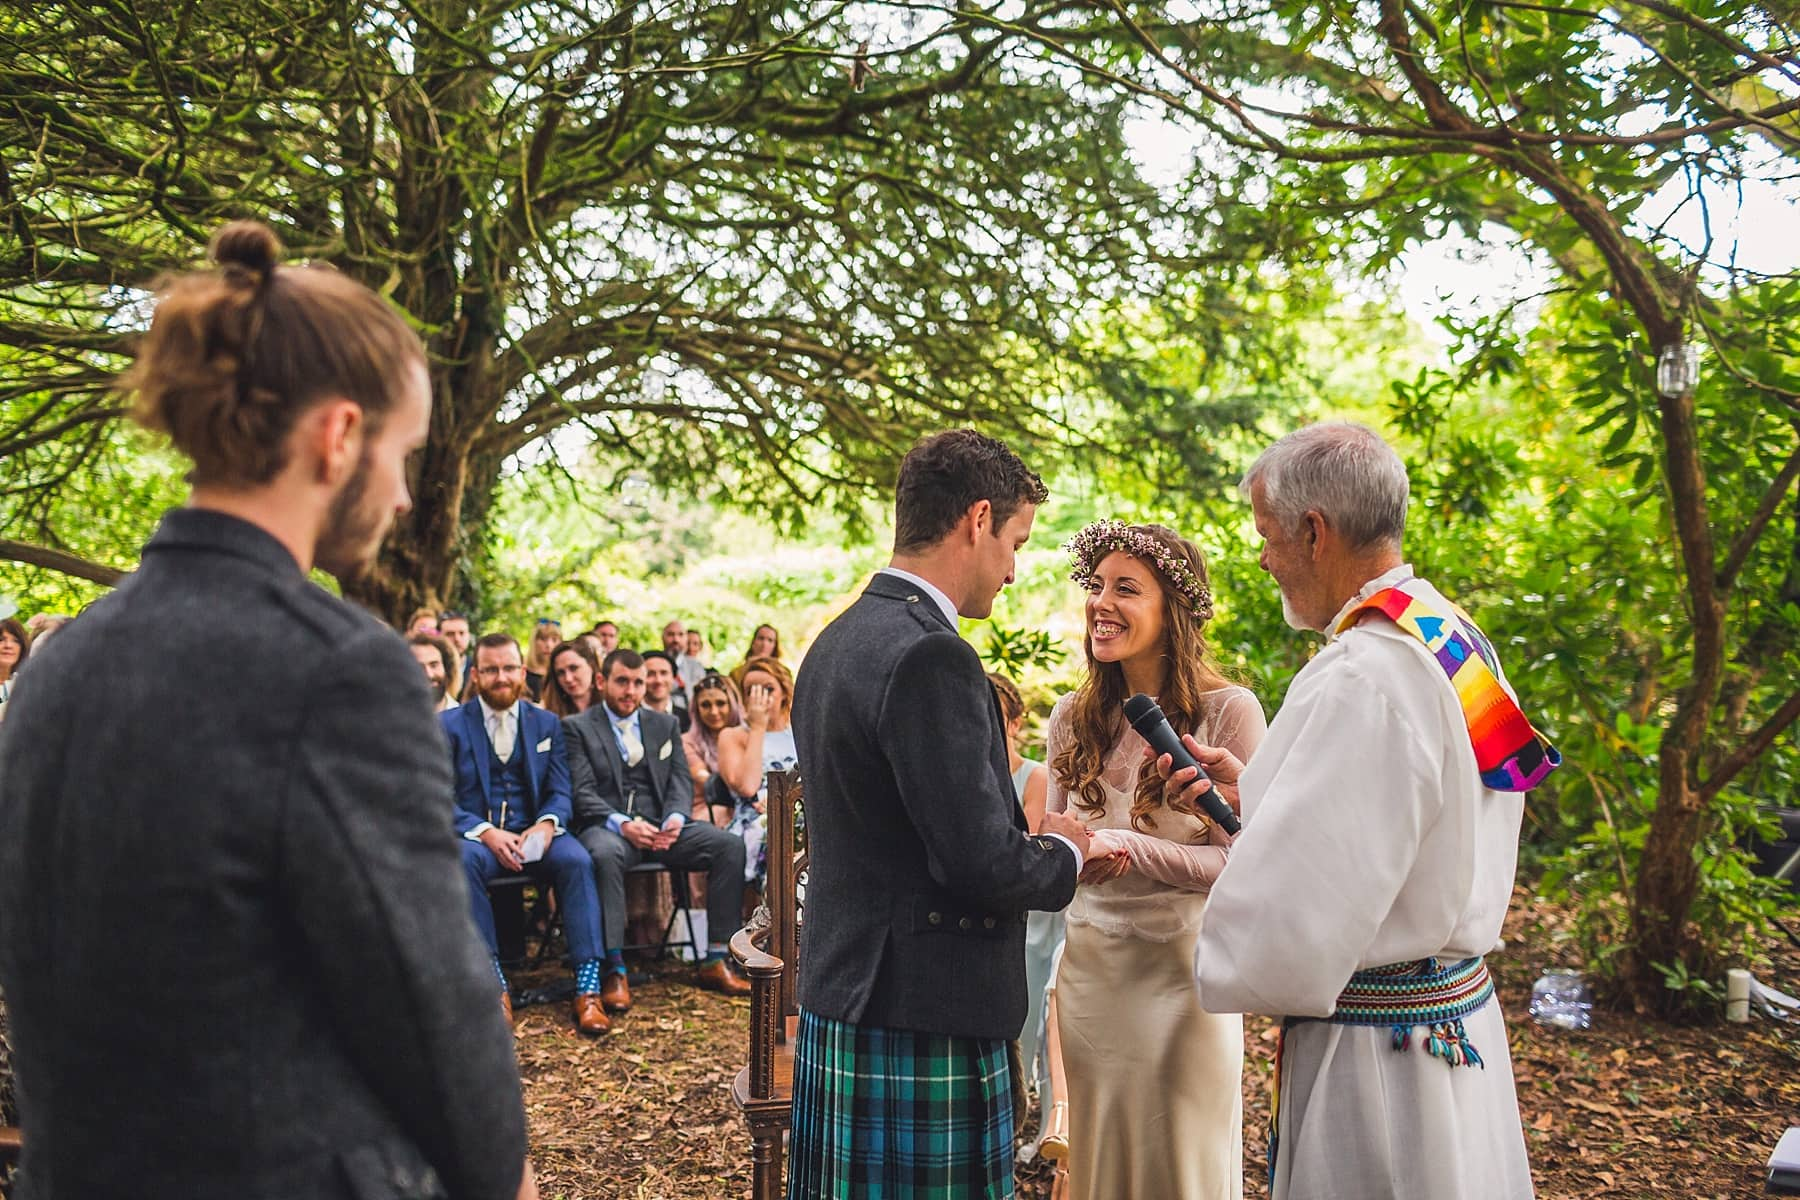 Markree Castle outdoor wedding,humanist ceremony,rainy wedding day,northern irish wedding photographer,